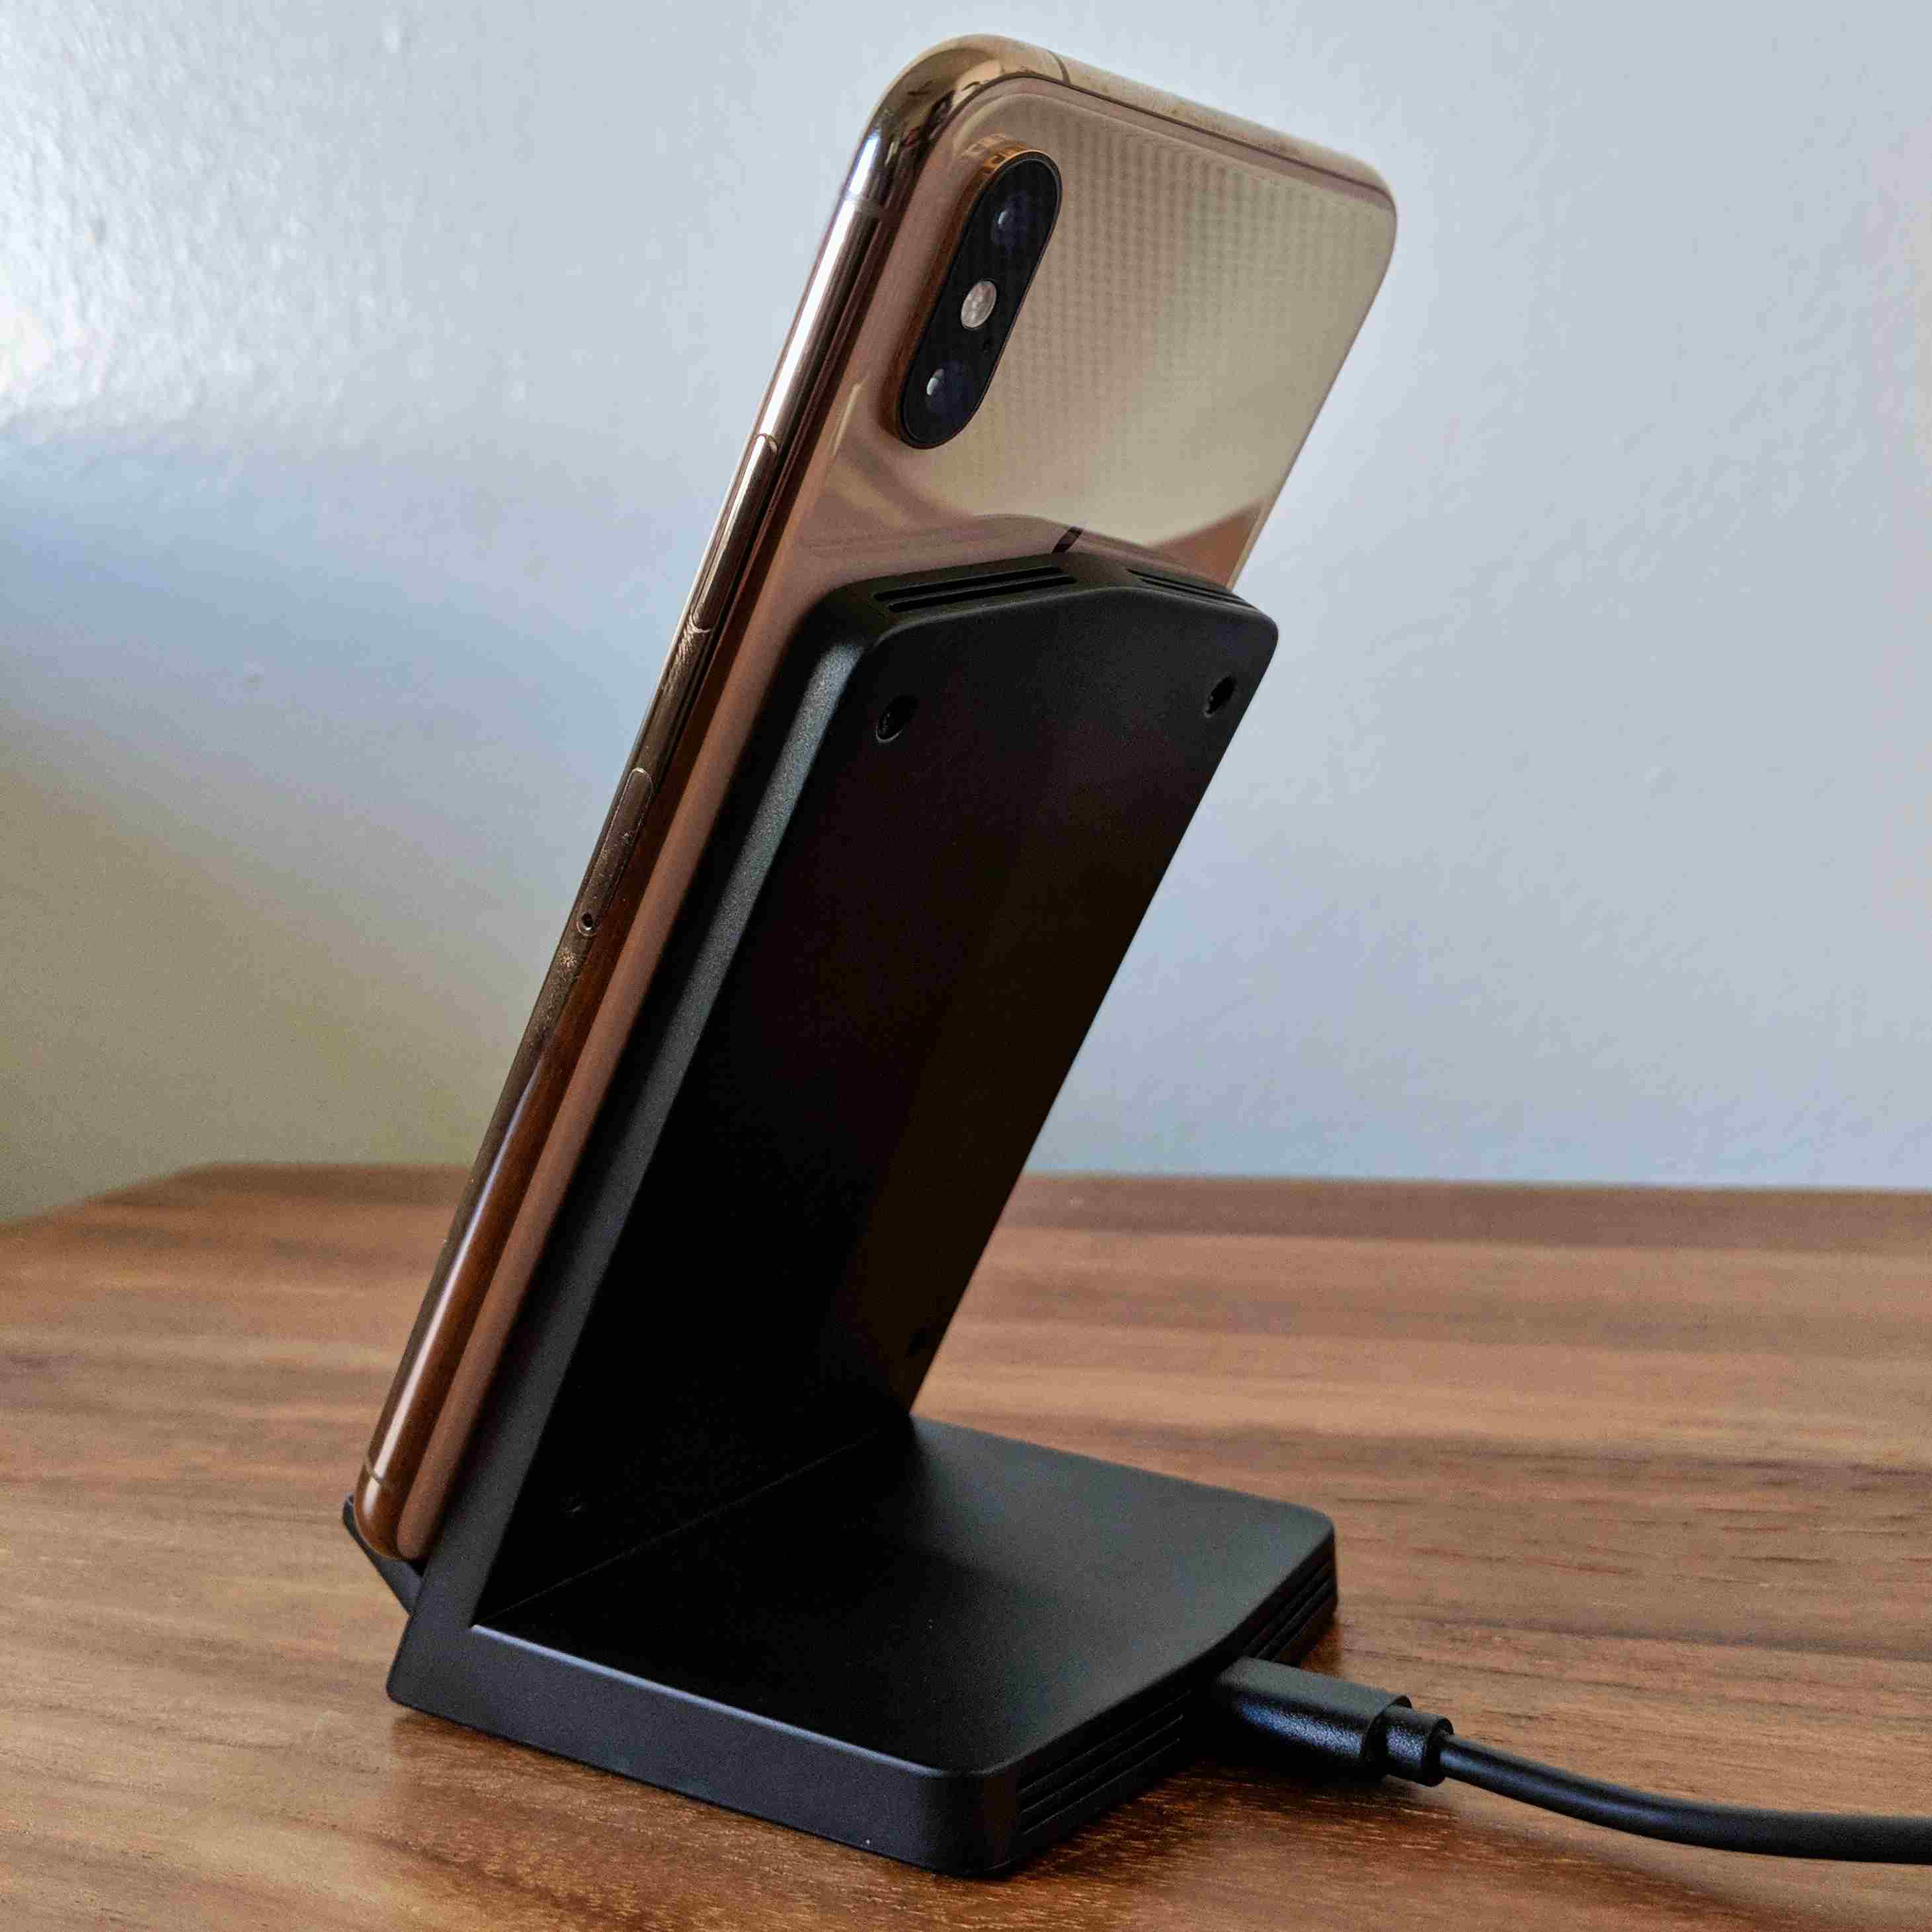 Seneo WaveStand 153 Fast Wireless Charger